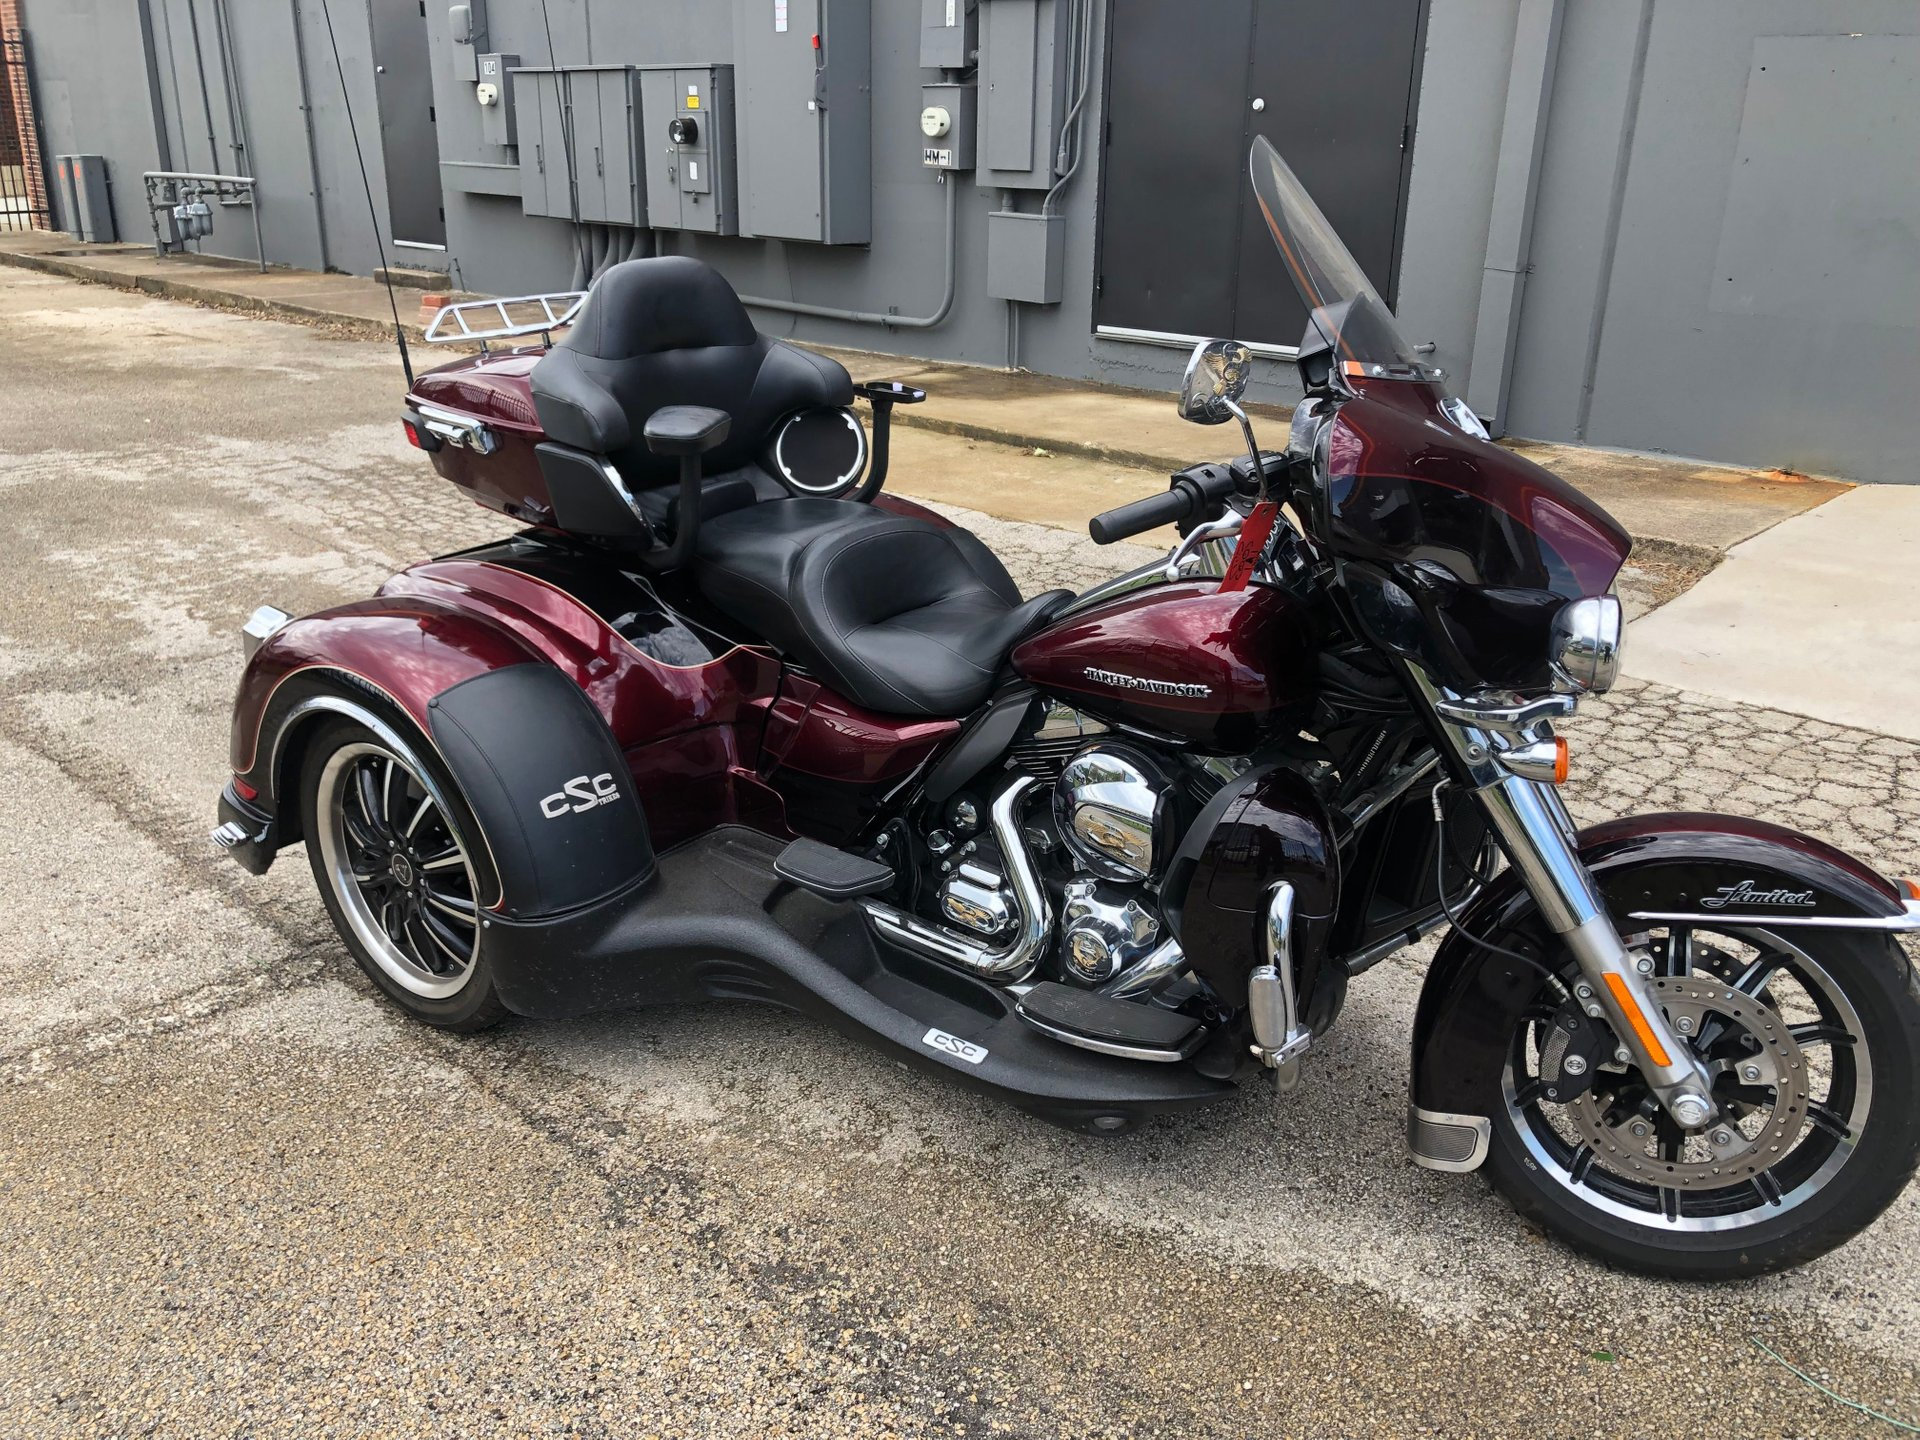 2014 harley davidson ultra limited flhtk w california side car trike conversion